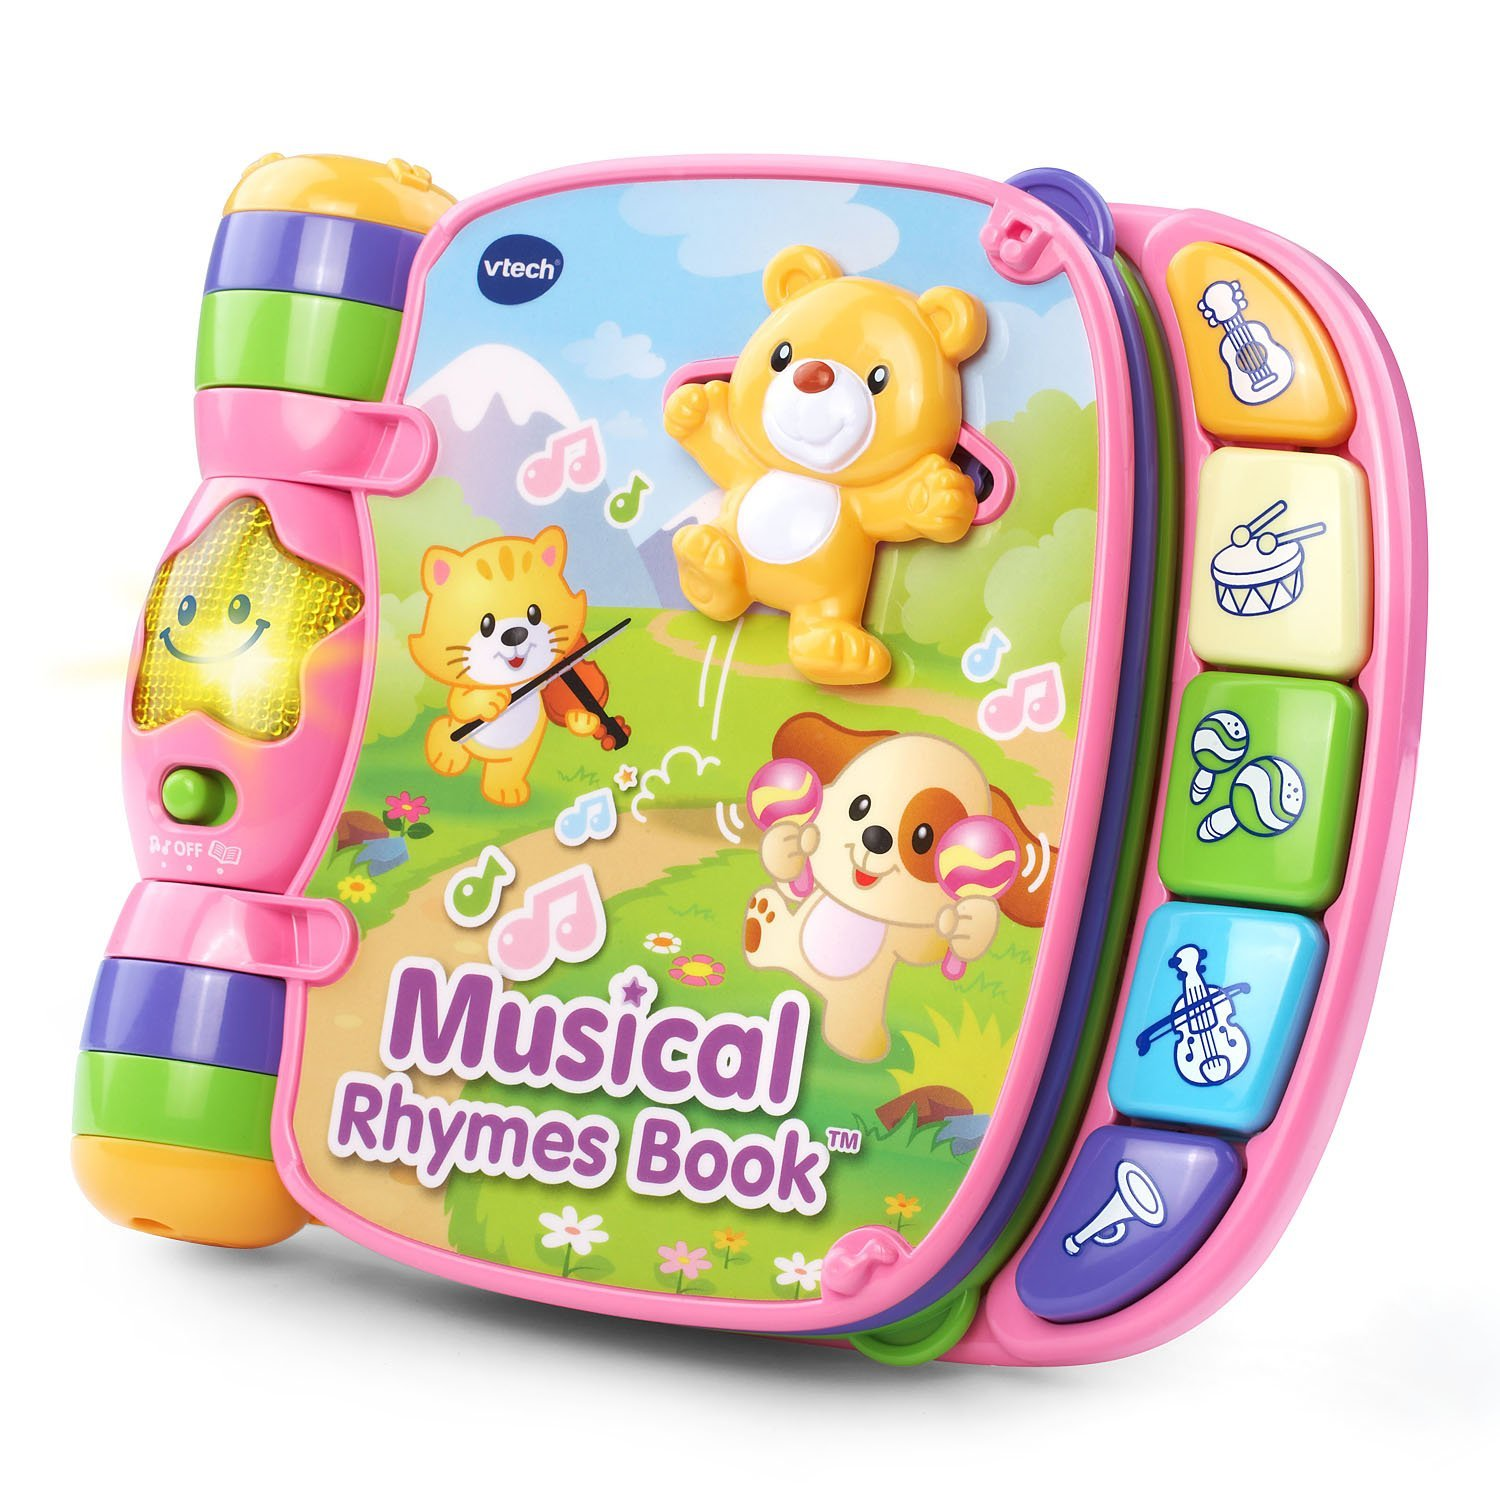 Musical Rhymes Book Pink Online Exclusive, USA, Brand VTech by